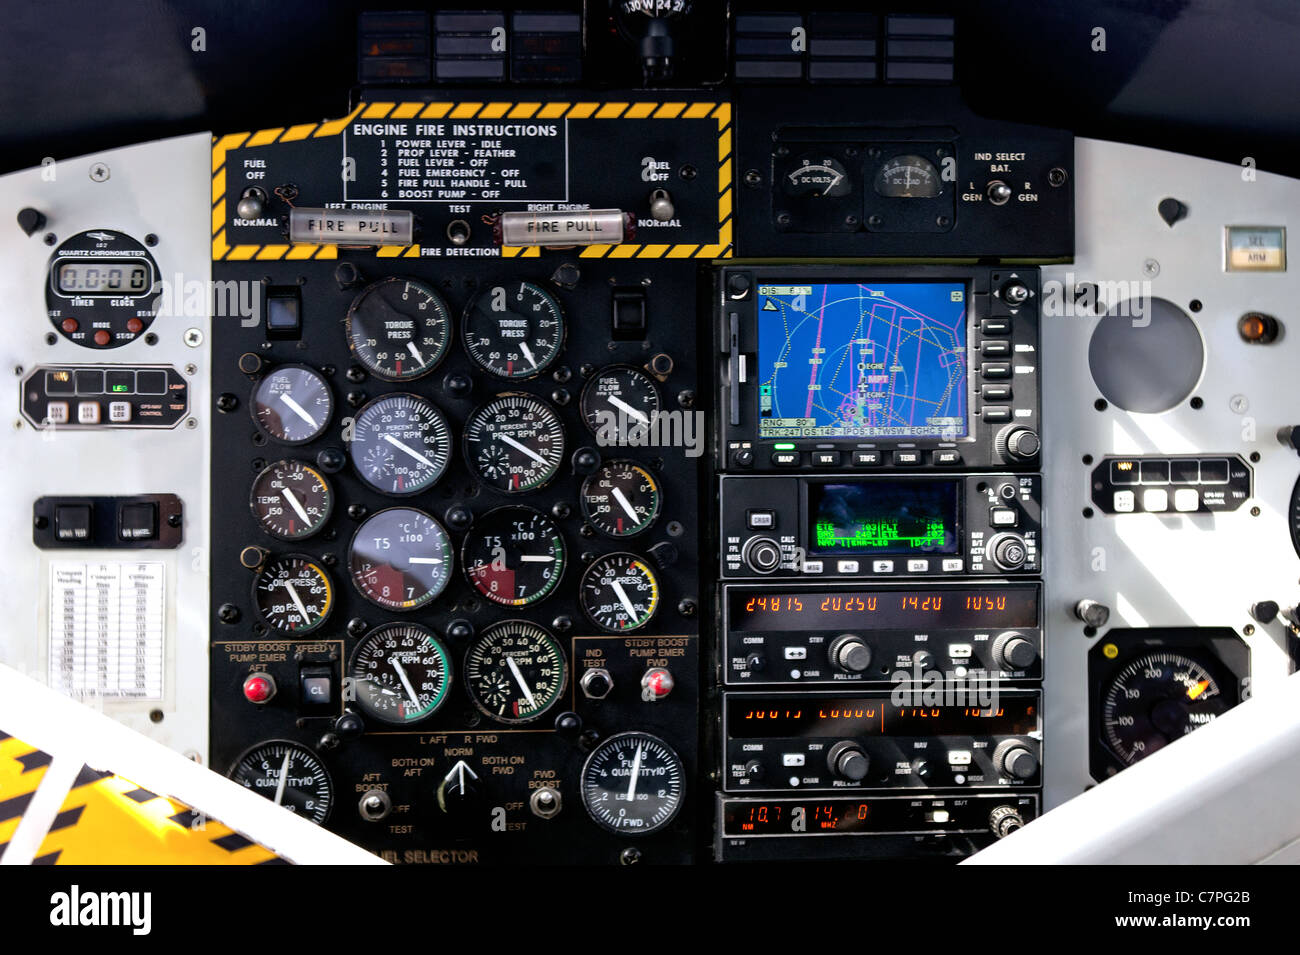 Photo of the instrument control panel in the cockpit of a twin propeller airplane. - Stock Image